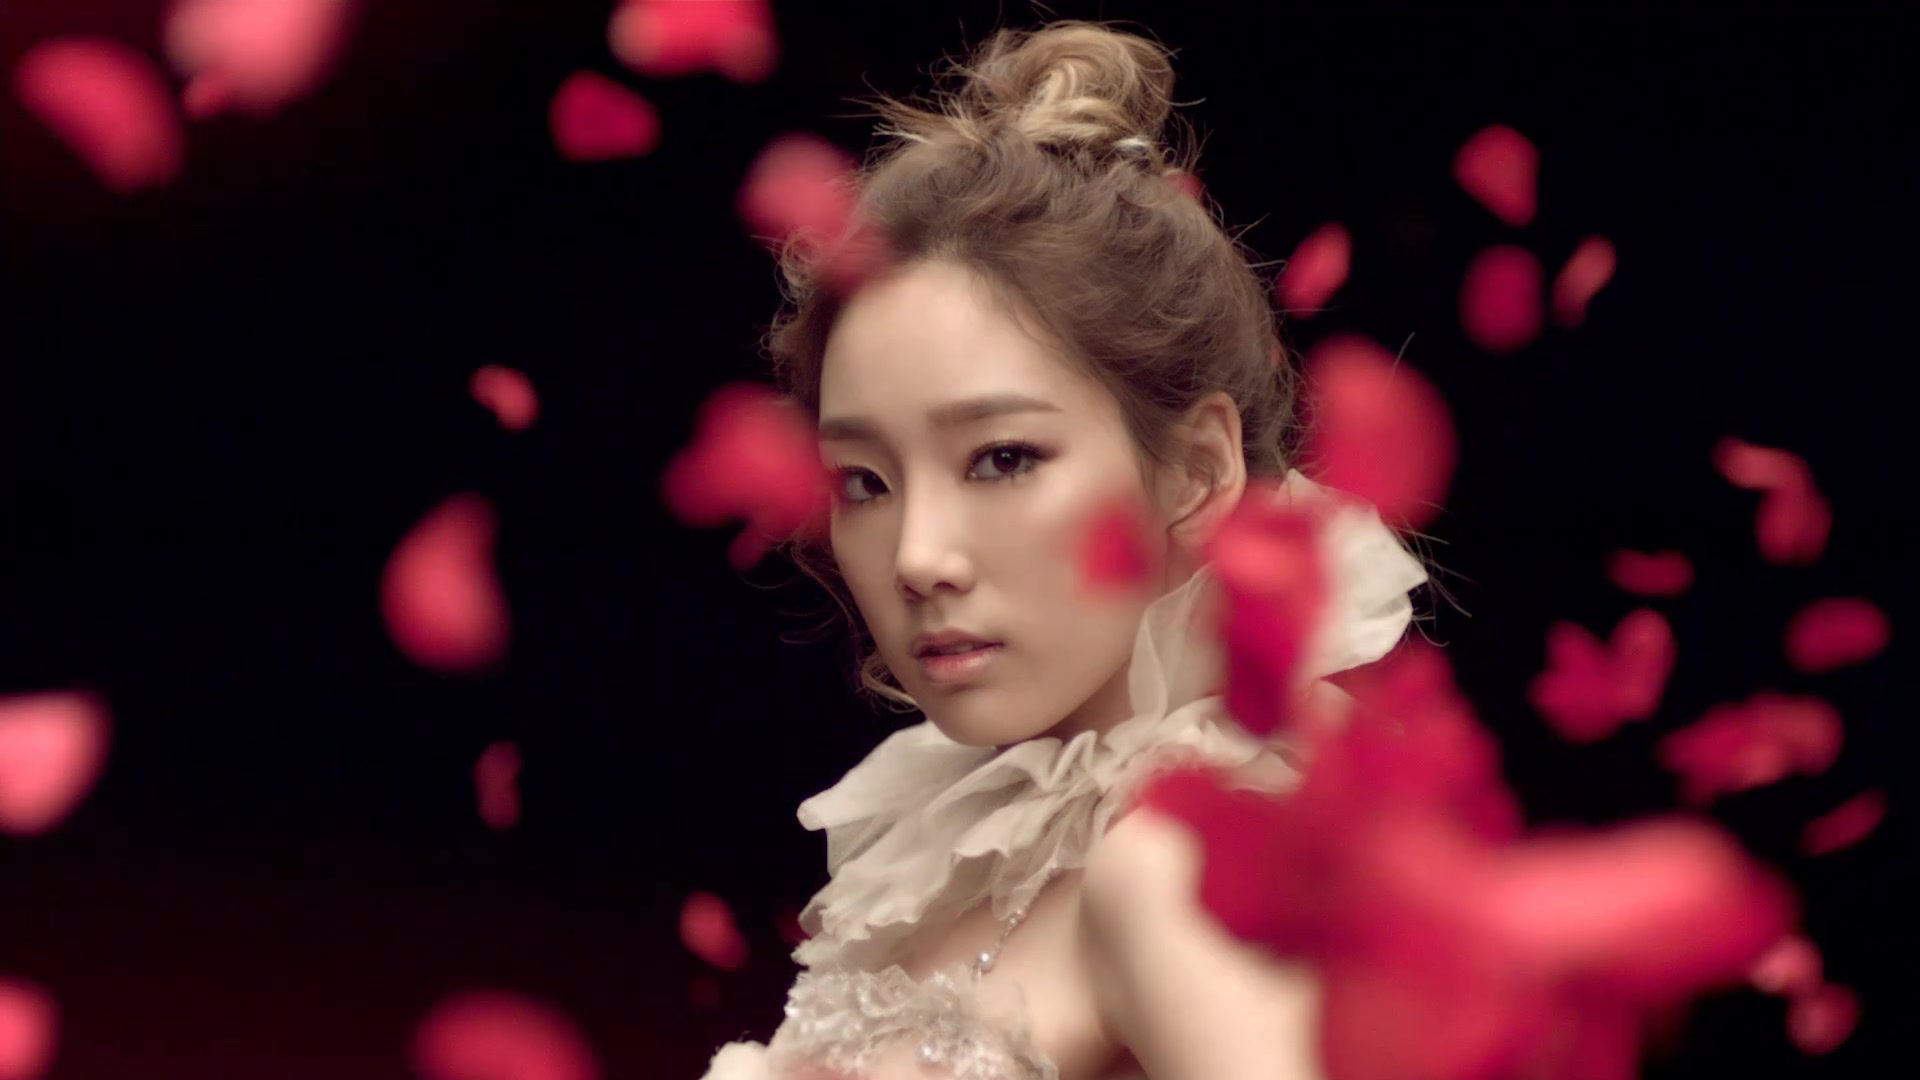 Taeyeon - The Boys mv - S♥NEISM Image (27080614) - Fanpop Taeyeon The Boys